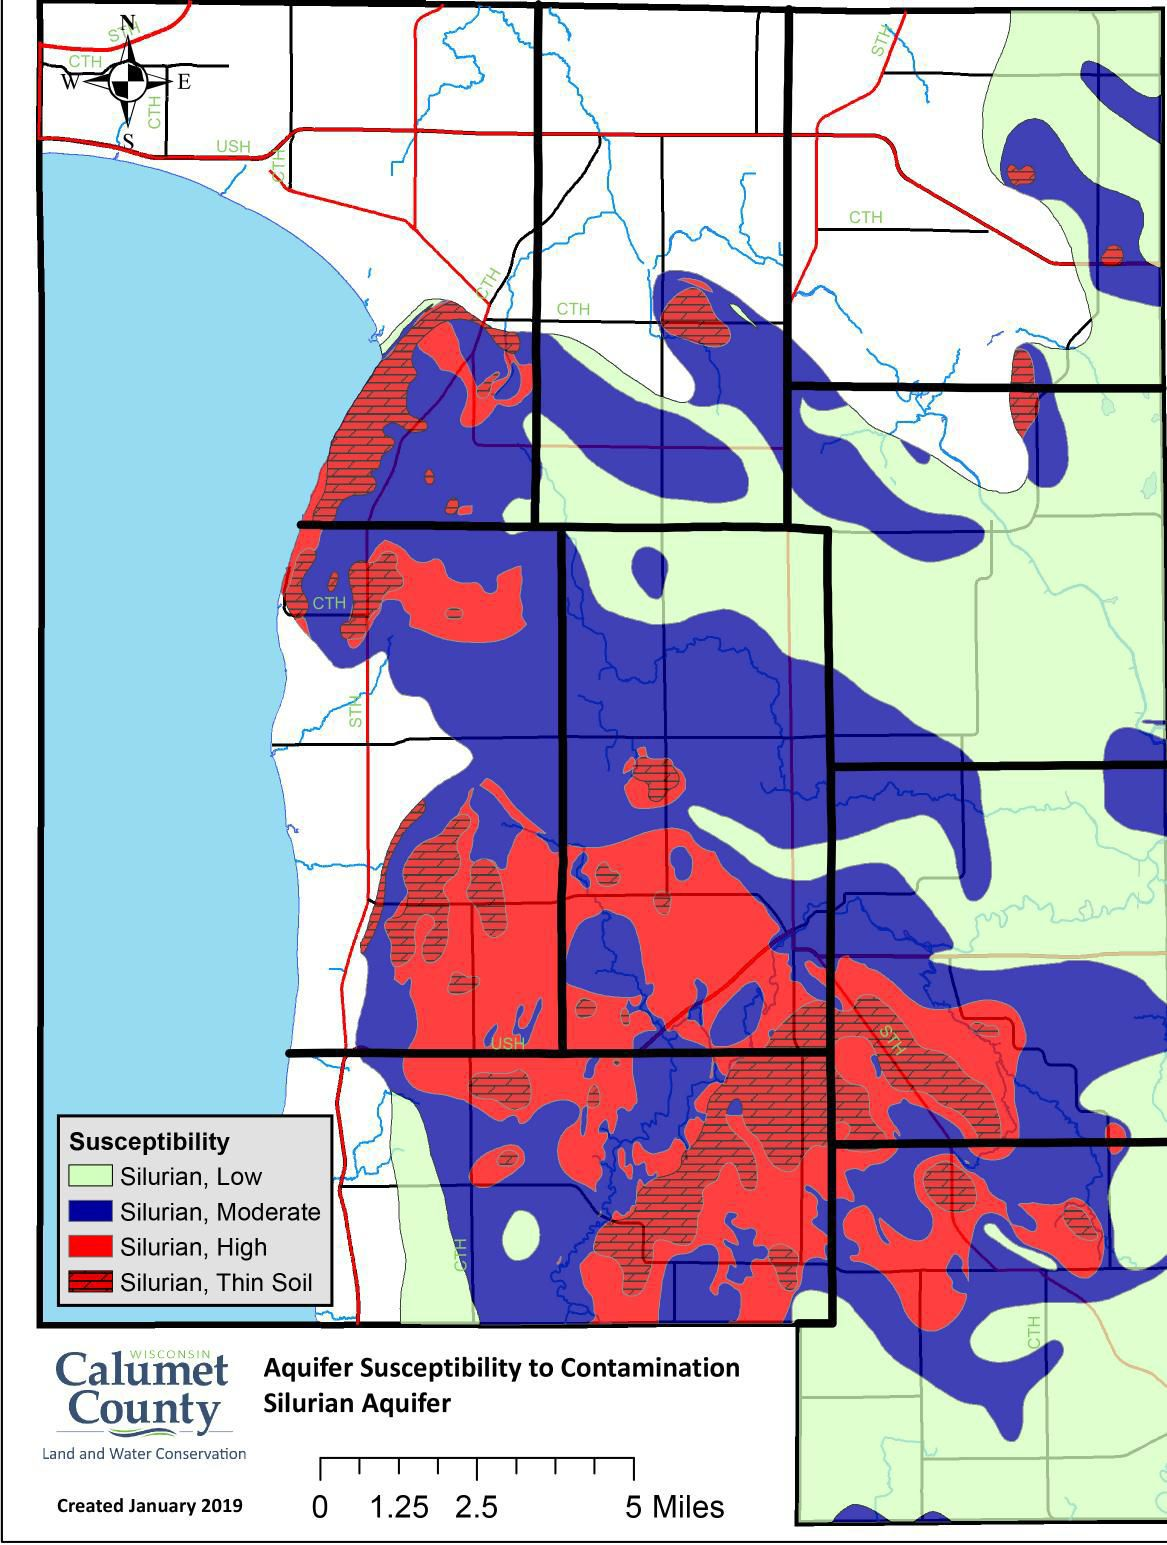 Silurian aquifer susceptibility in Calumet County, 2019